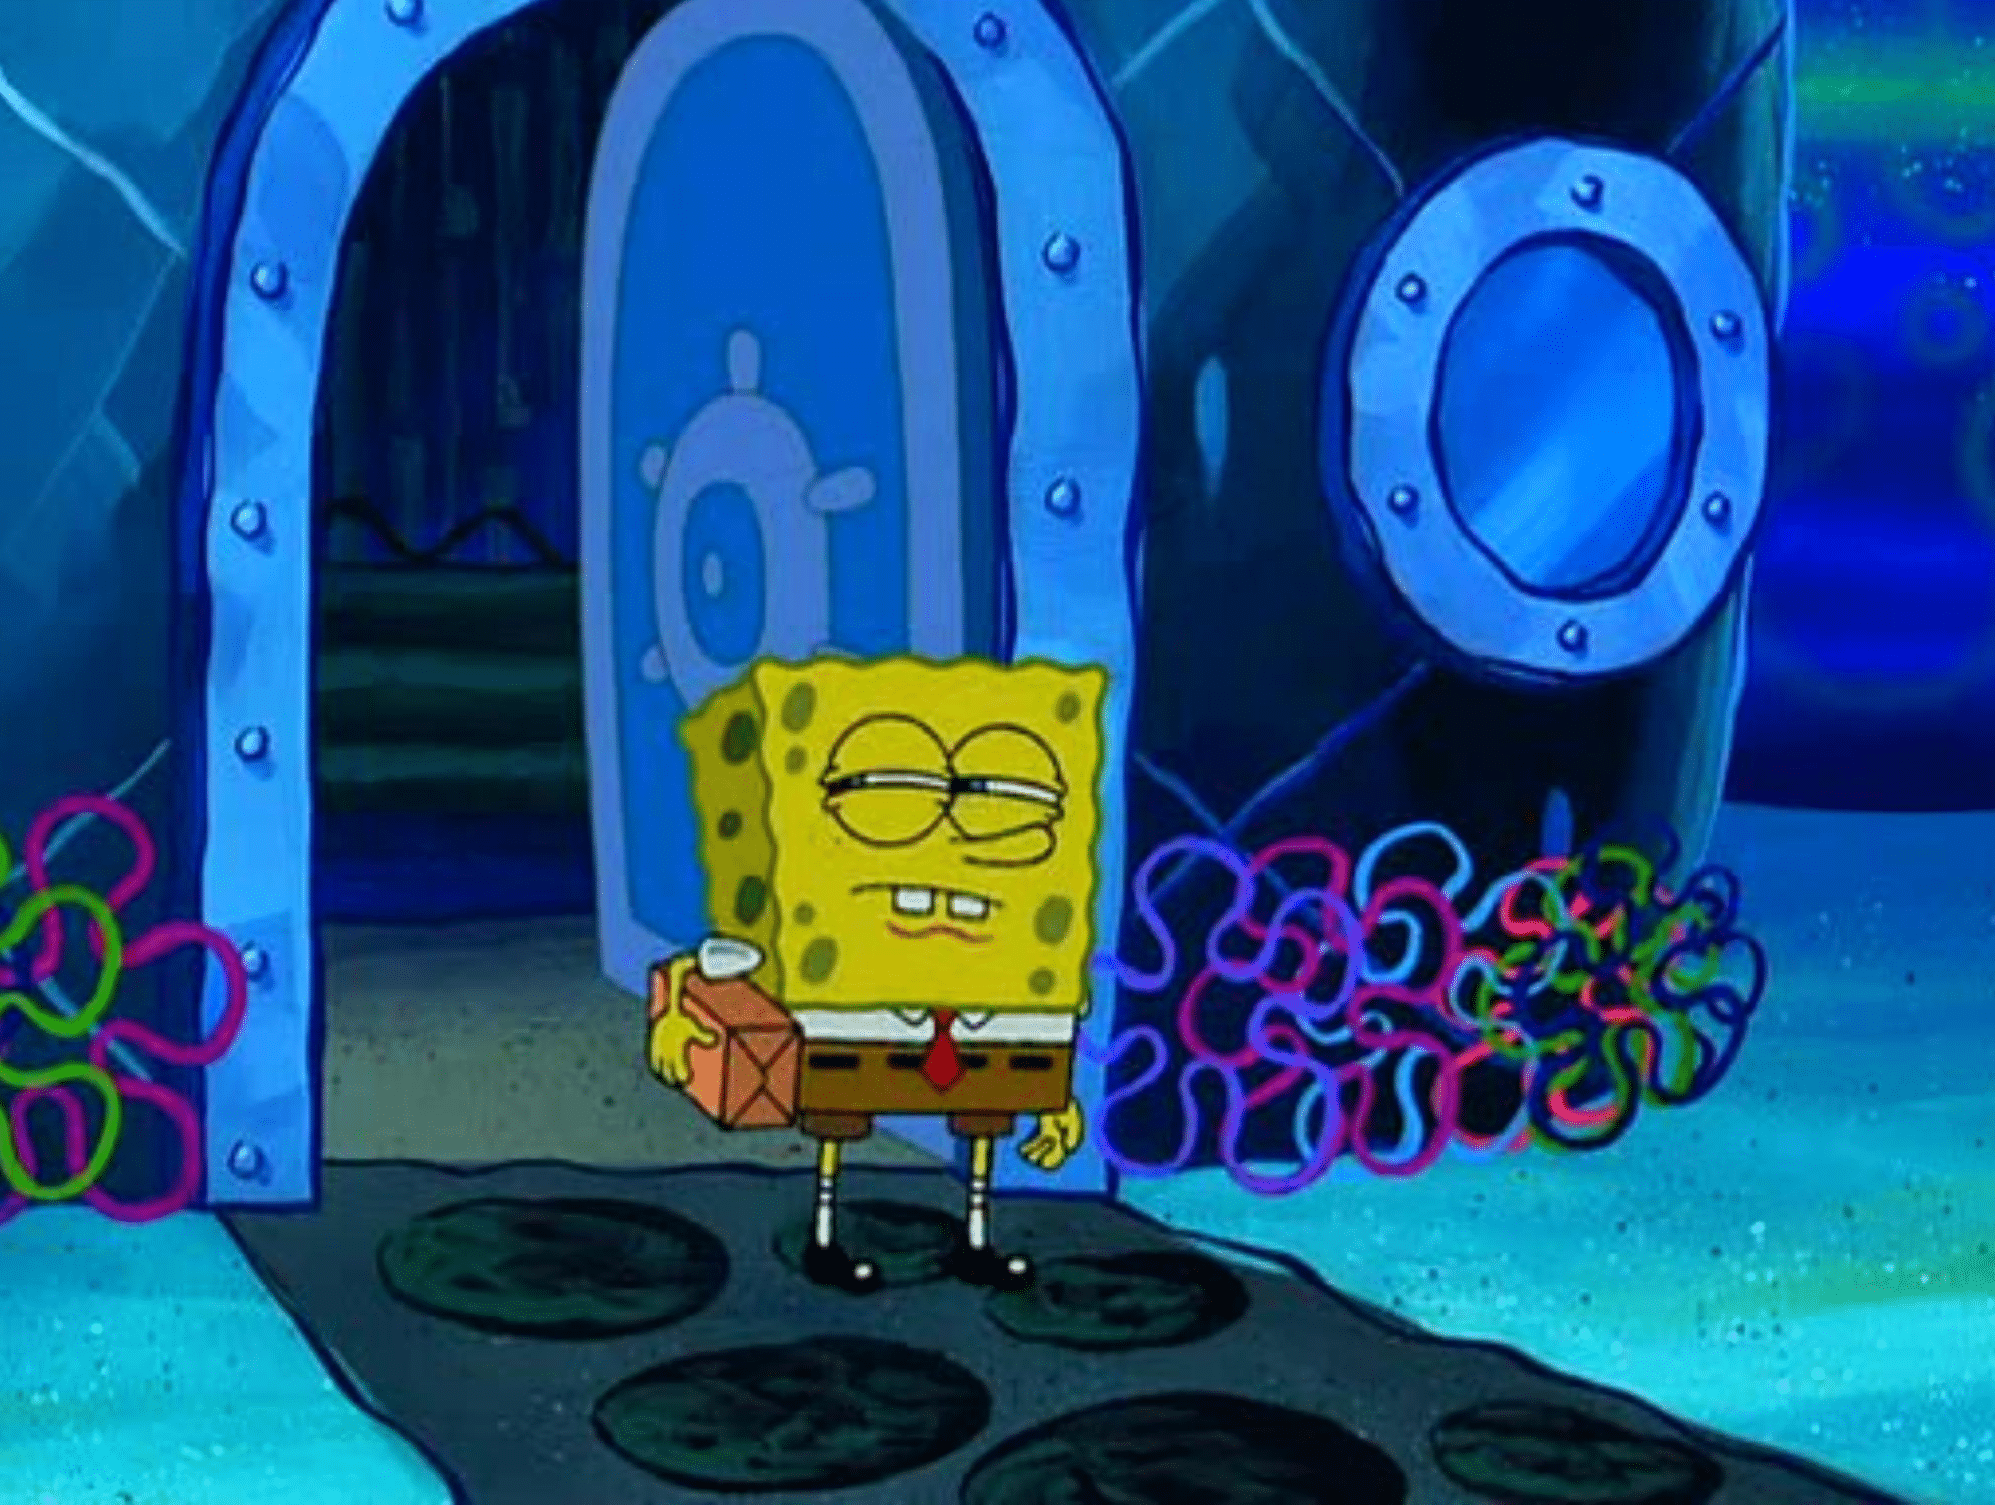 with package suspicious / squinting Spongebob meme template blank